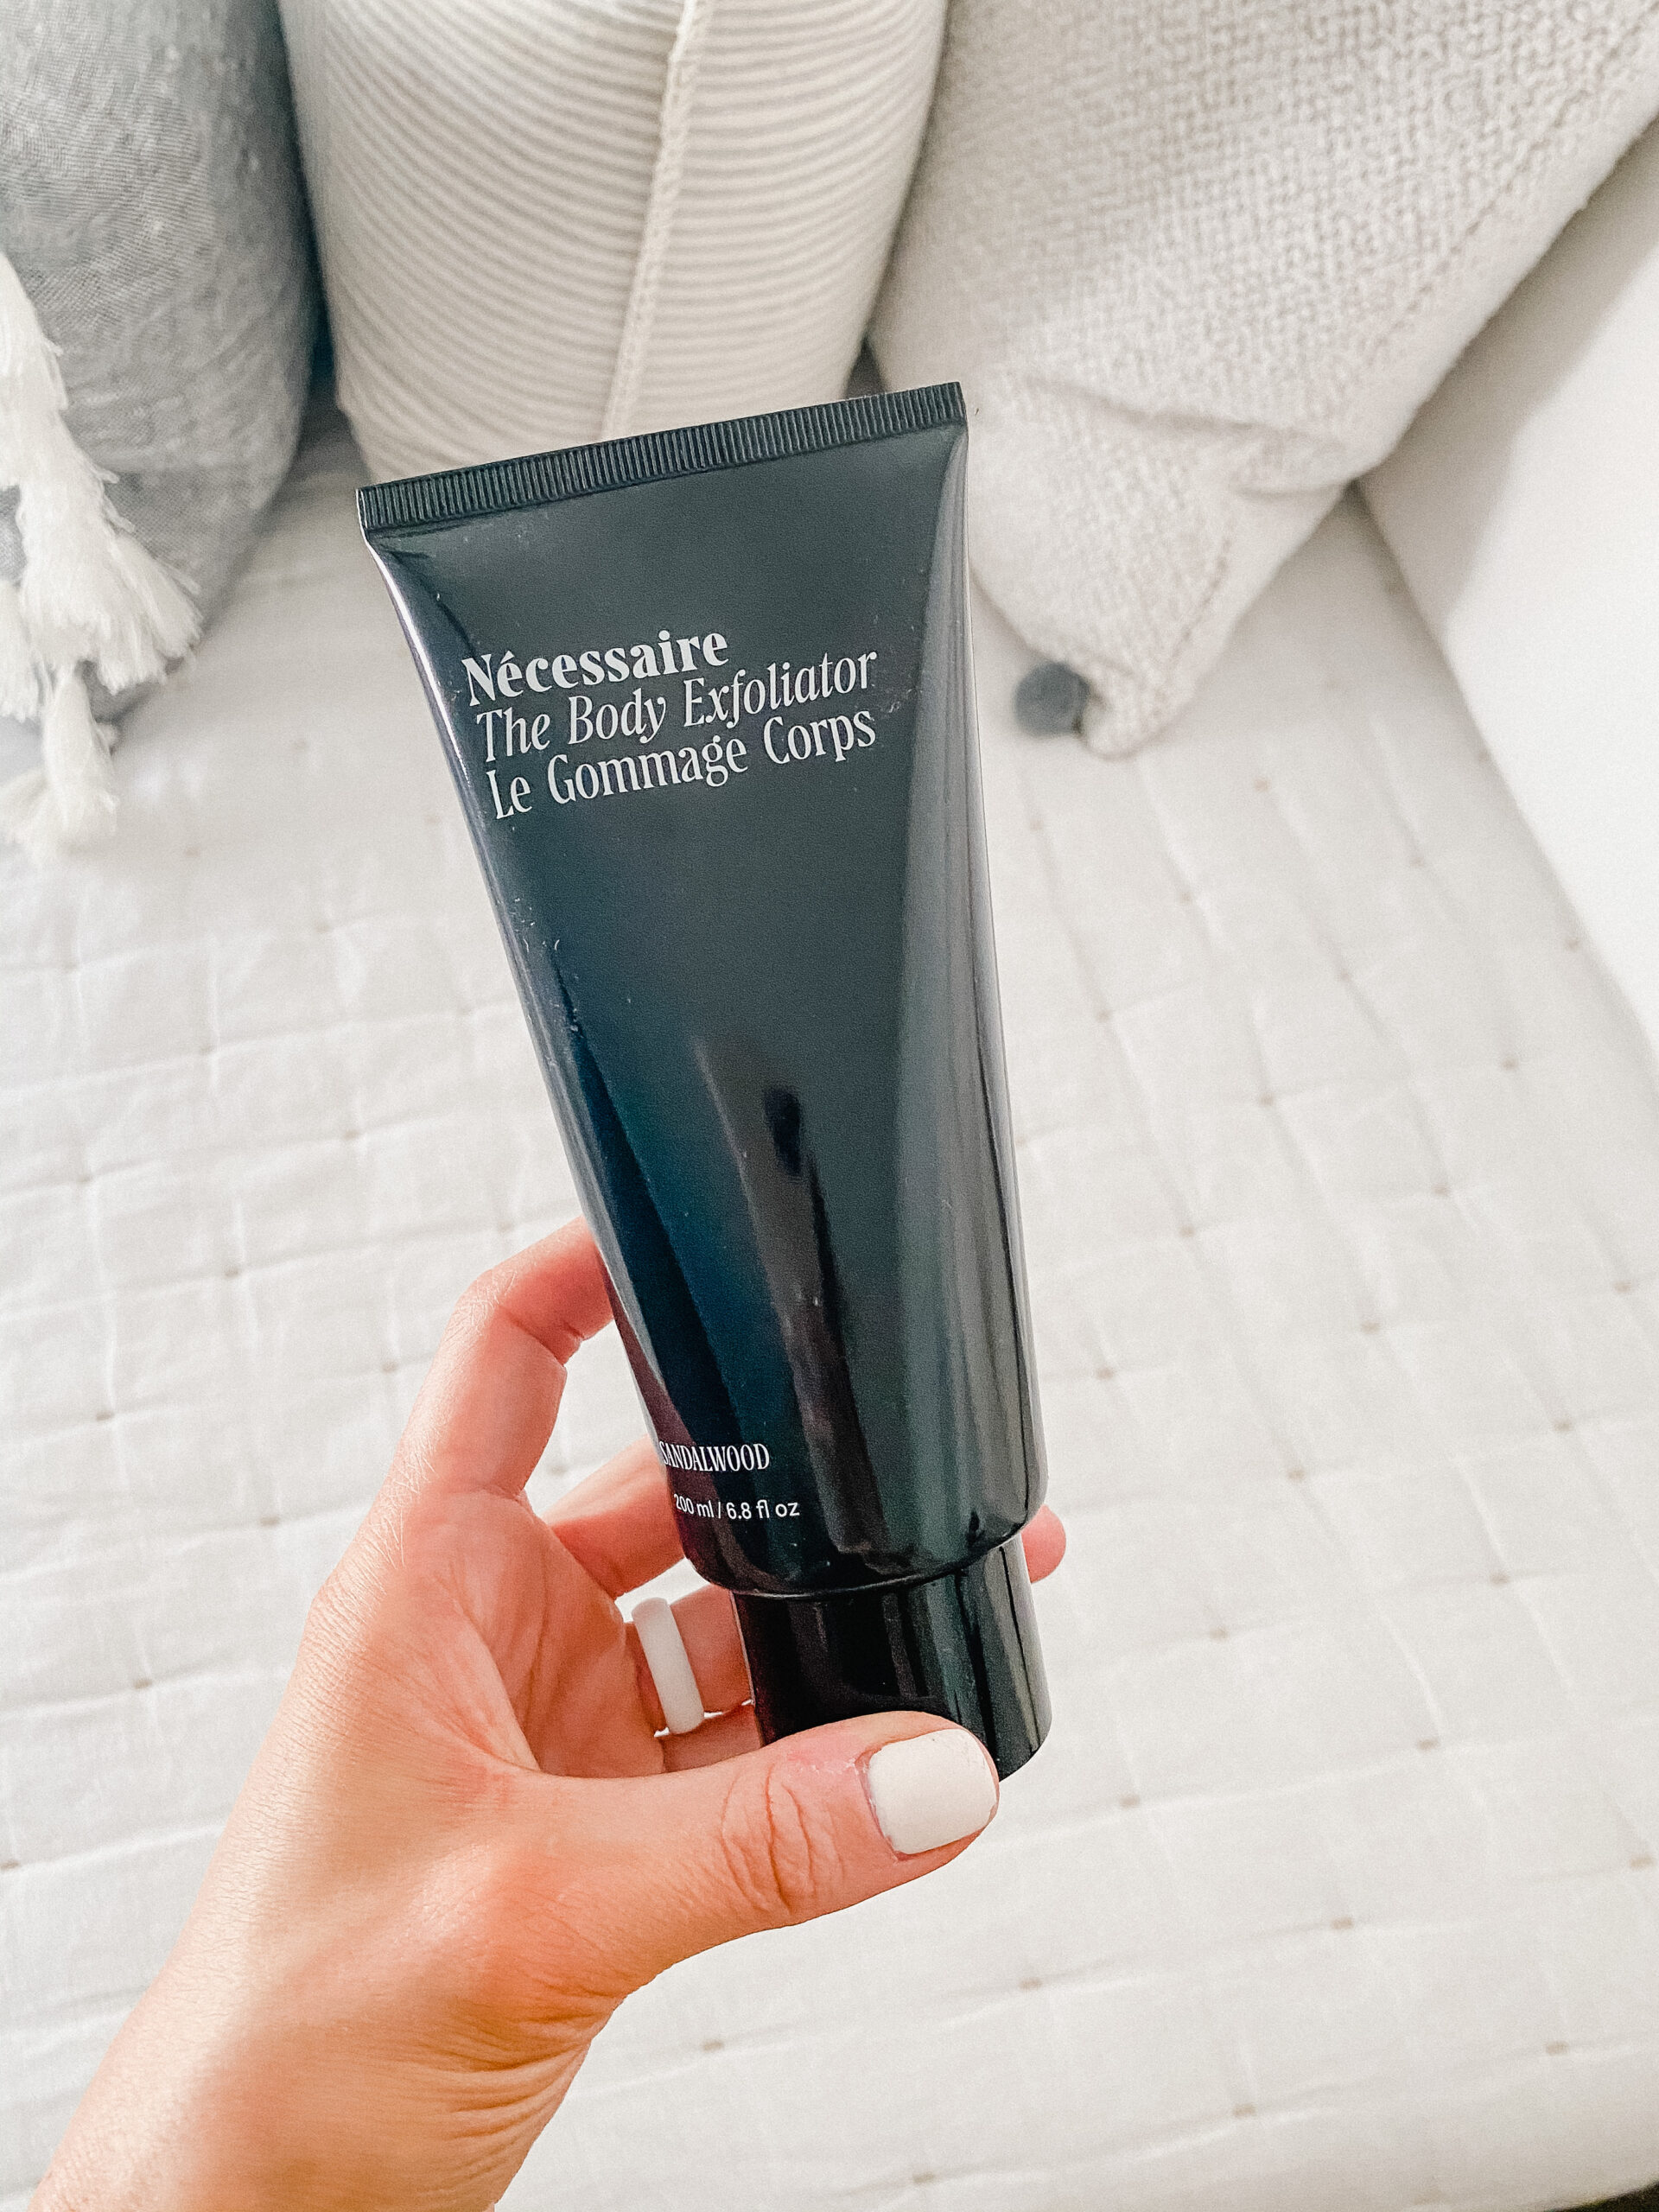 Connecticut life and style blogger Lauren McBride shares her self tanning tips plus favorite products to prep and tan her skin.